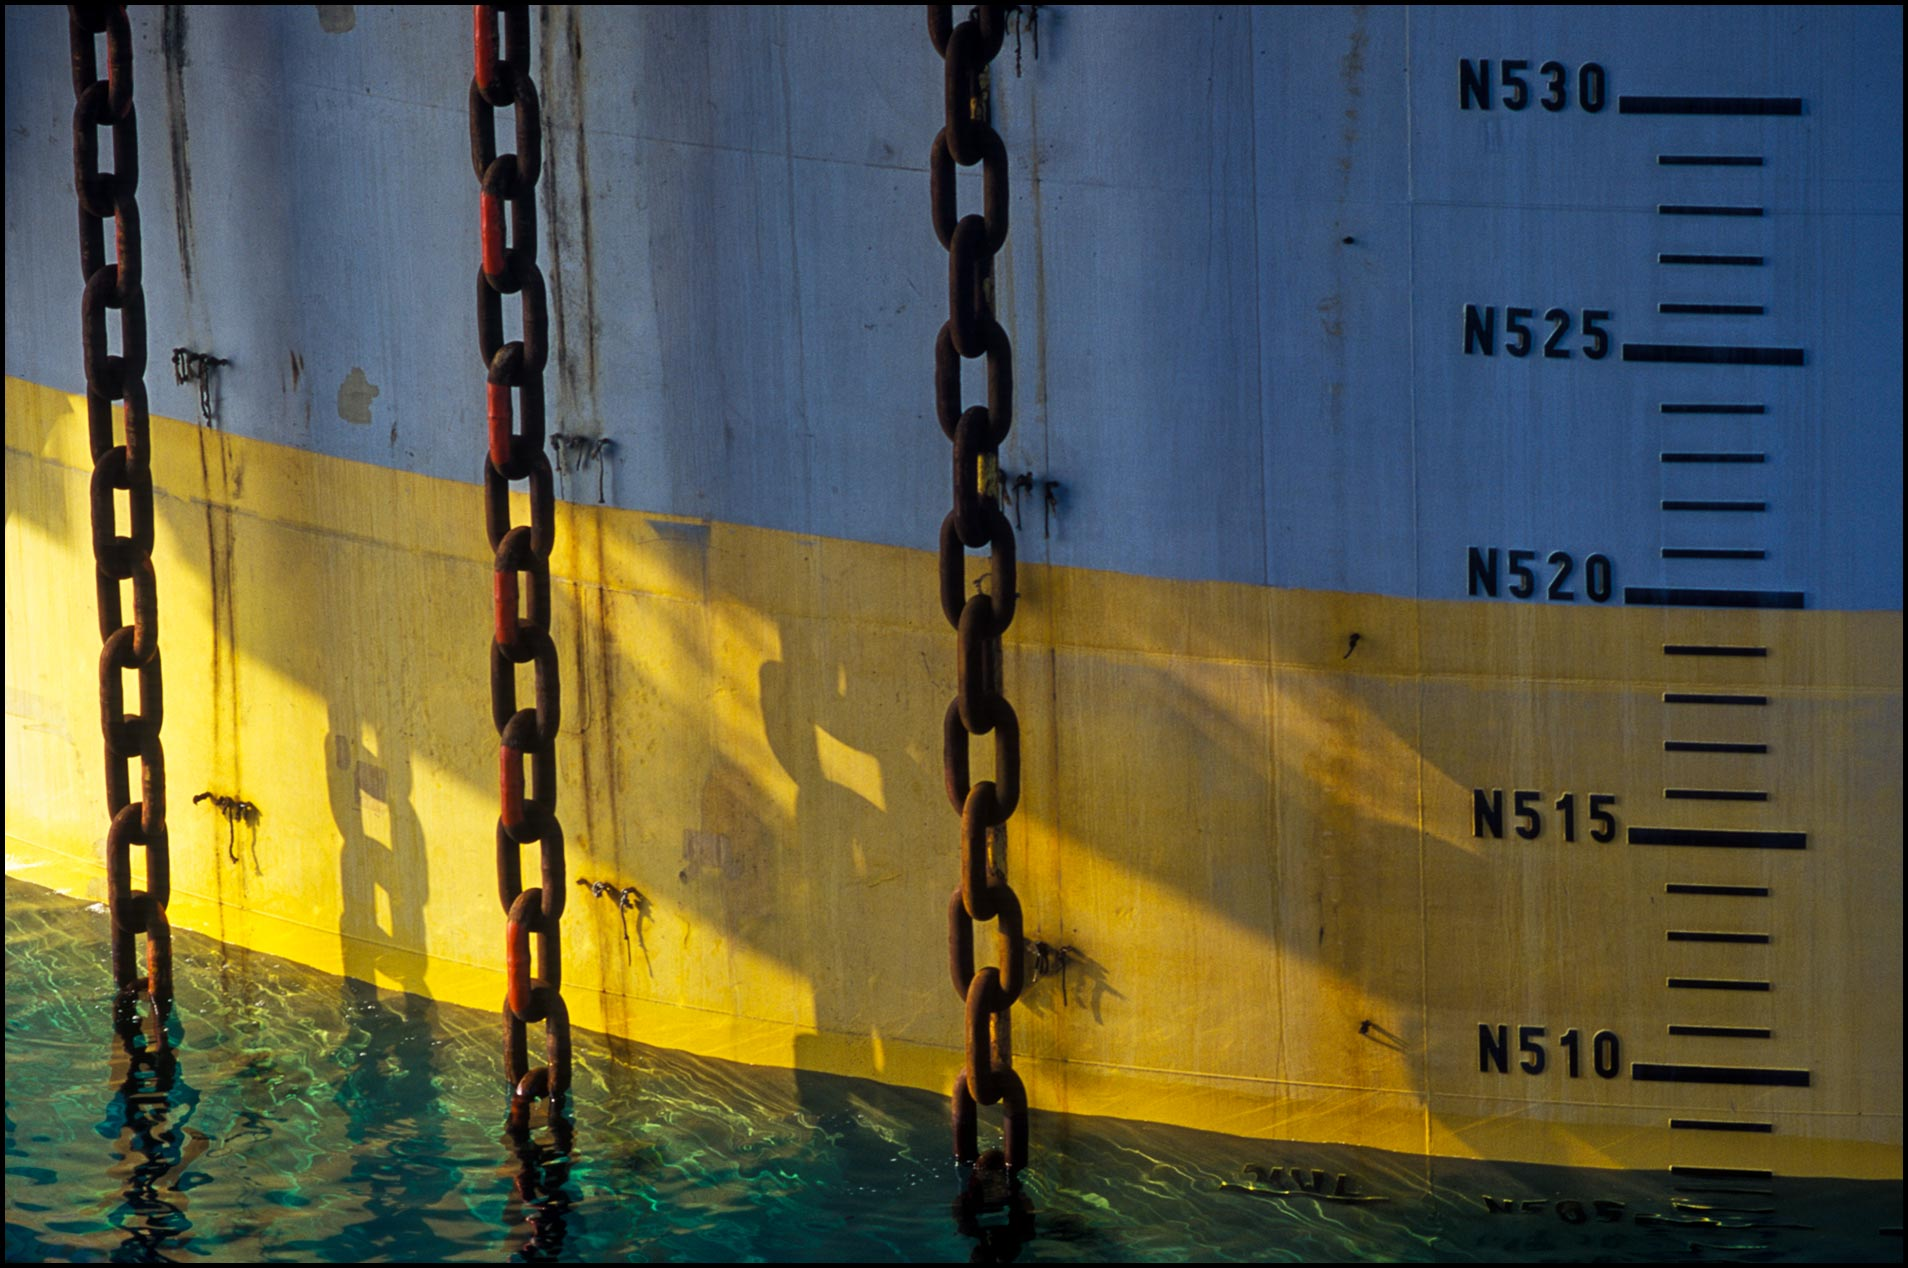 Detail of huge mooring chains fastened to ocean floor stabilize offshore rig of spar design.